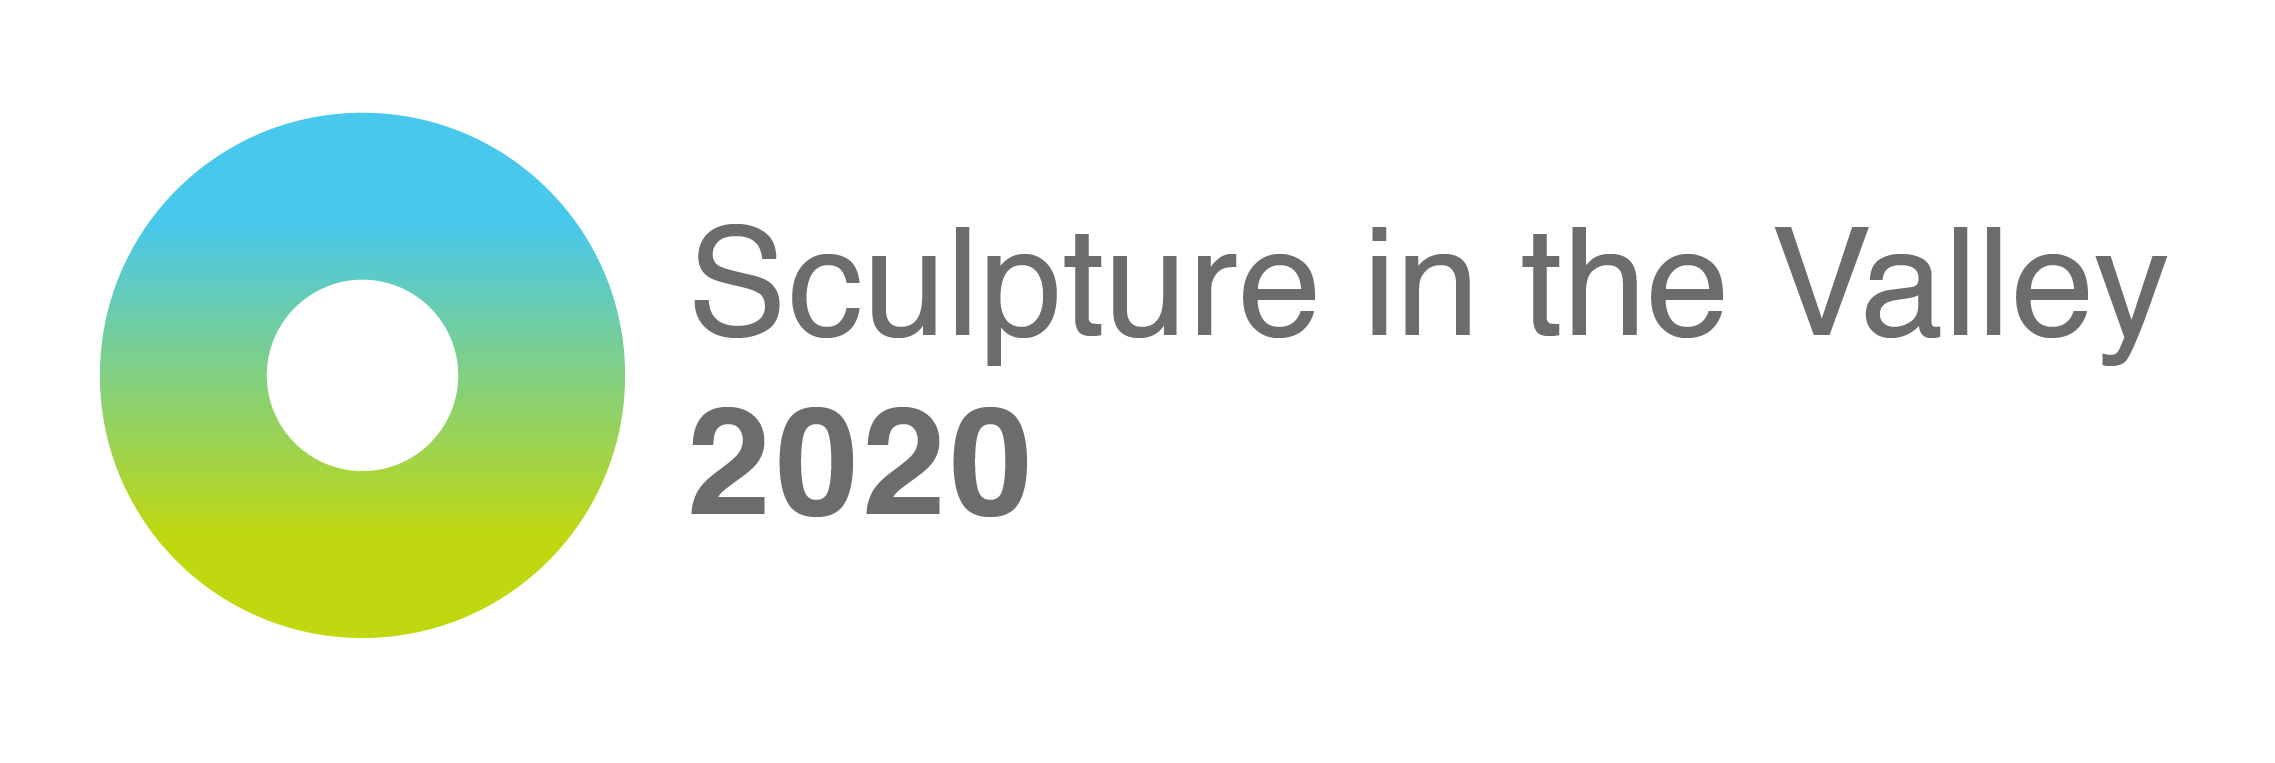 Sculpture in the Valley 2020